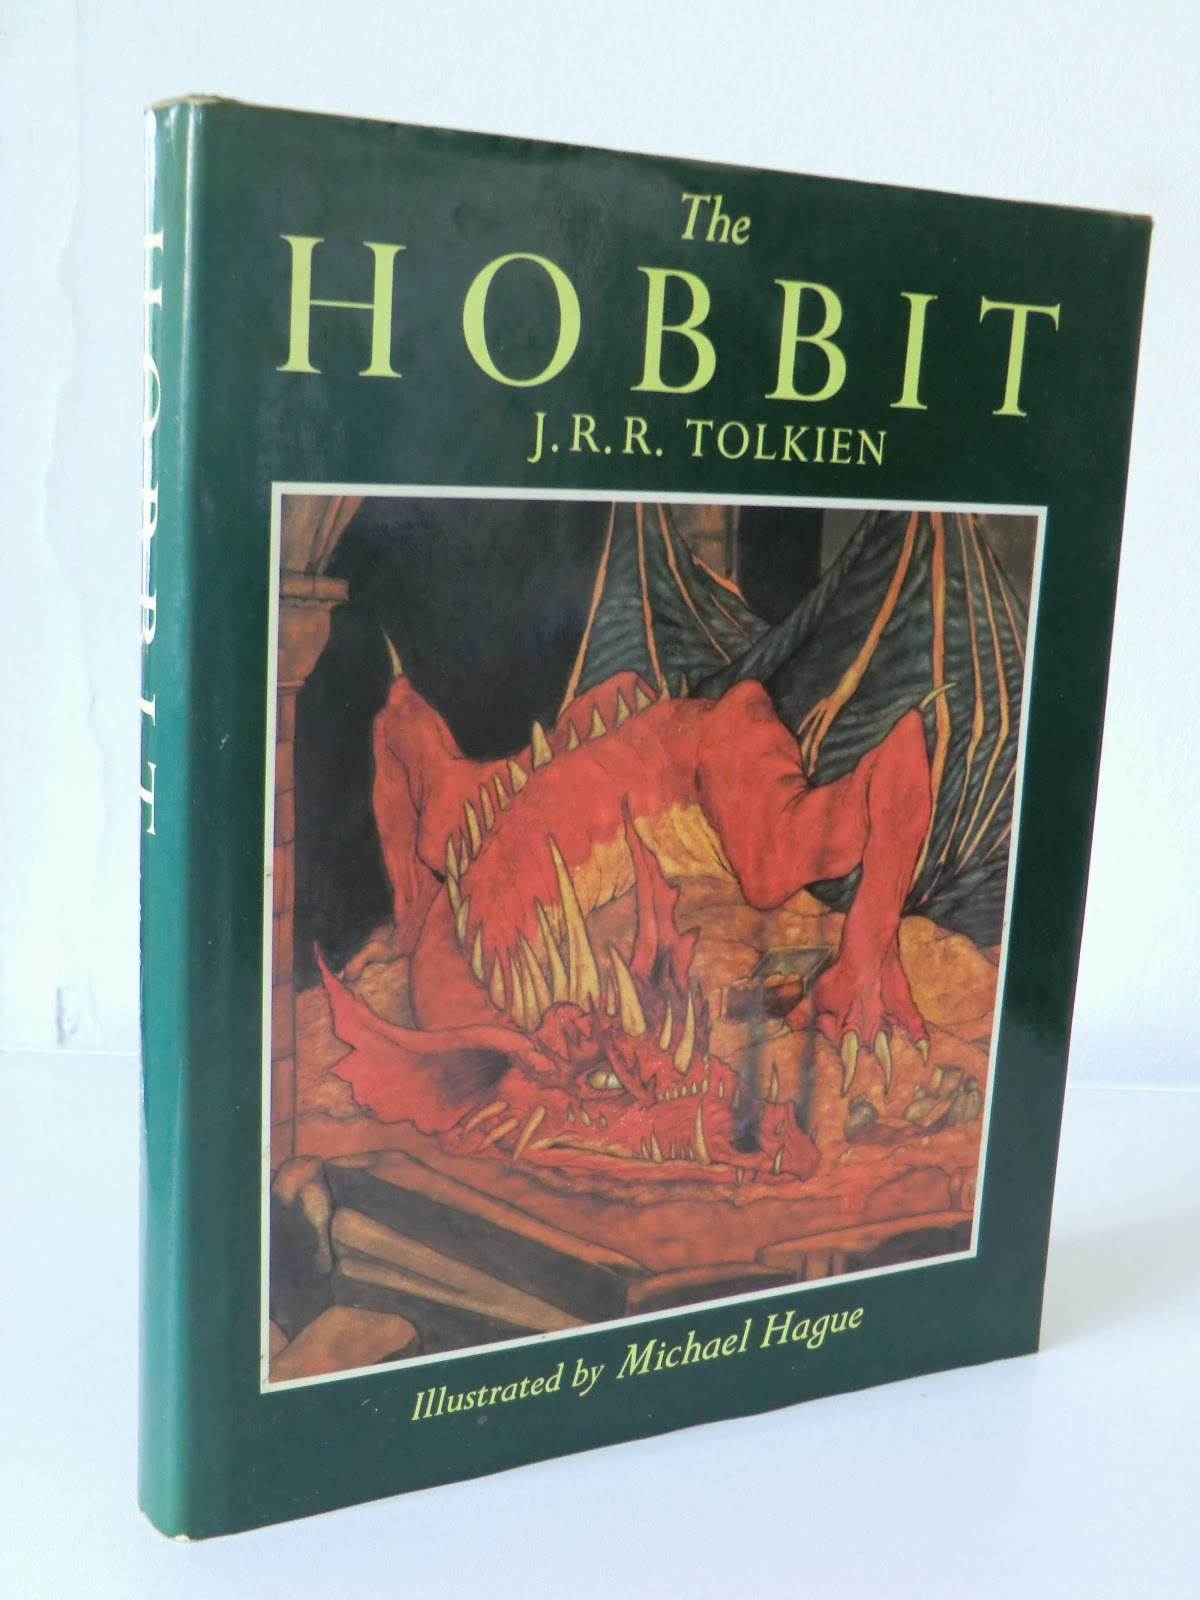 an antique books guide the hobbit j r r tolkien 39 s most famous book and how much it 39 s worth. Black Bedroom Furniture Sets. Home Design Ideas